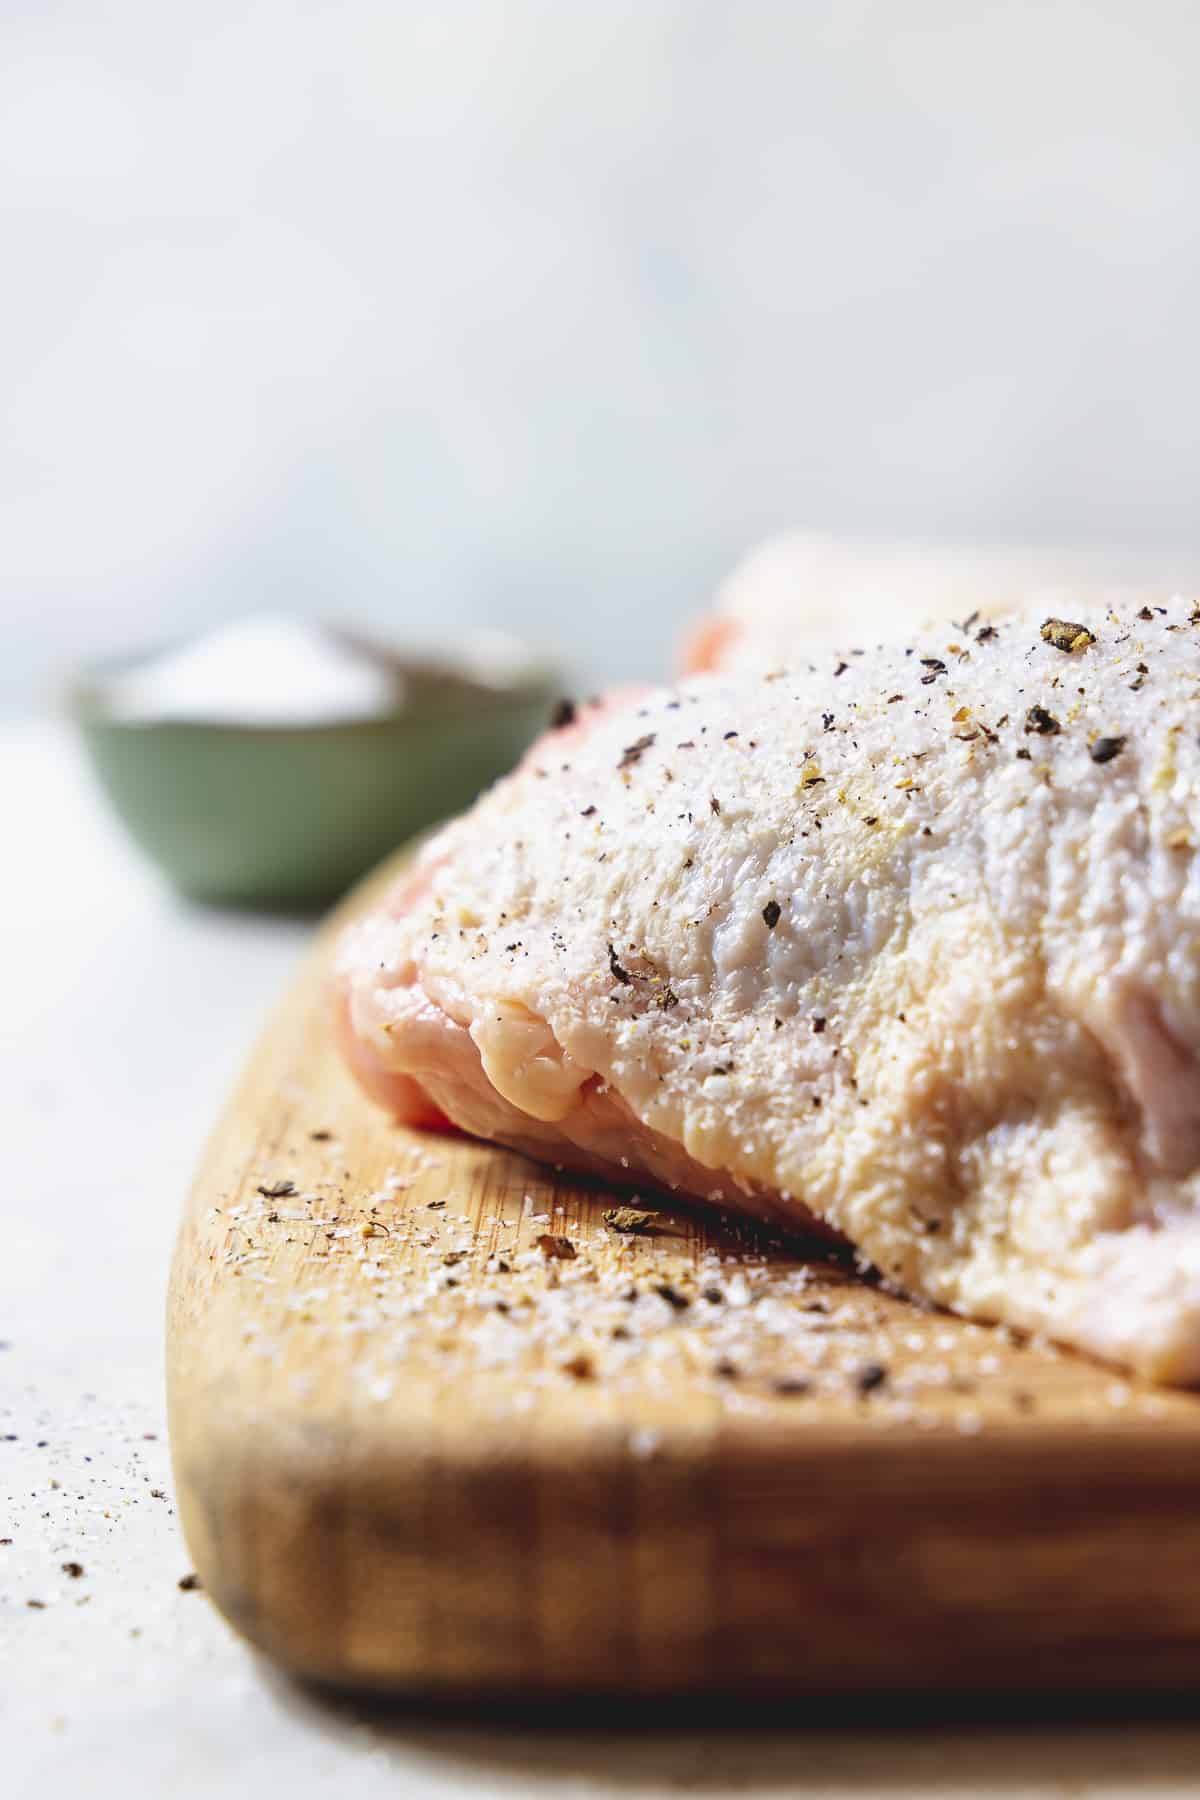 raw chicken thigh with salt and pepper